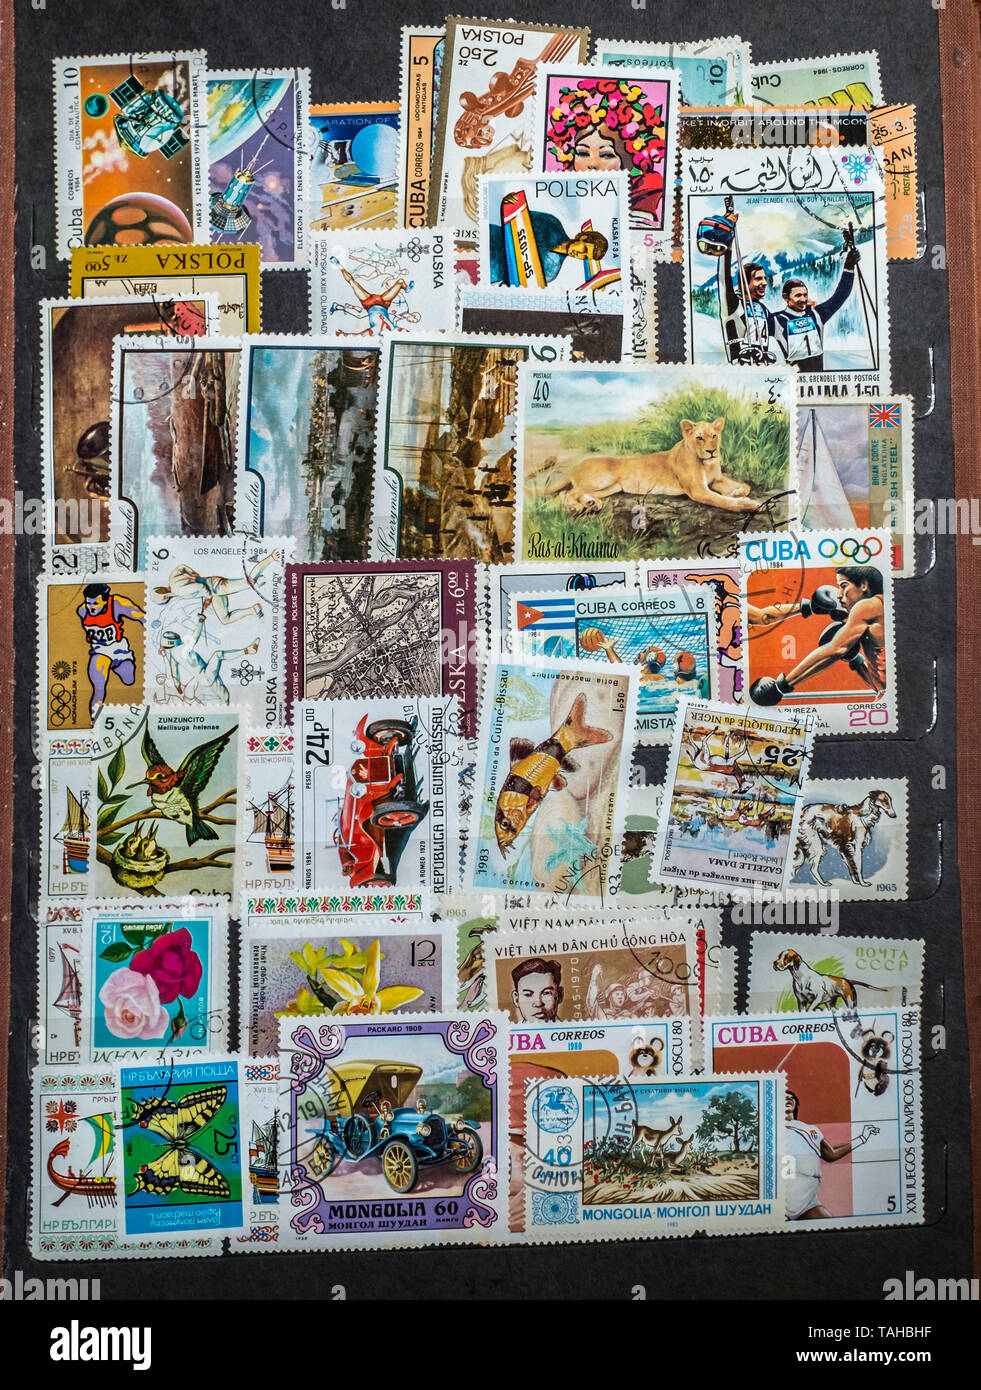 Giurgiu city, Romania - October 10, 2017. Old postage stamps arranged in the album - Stock Image